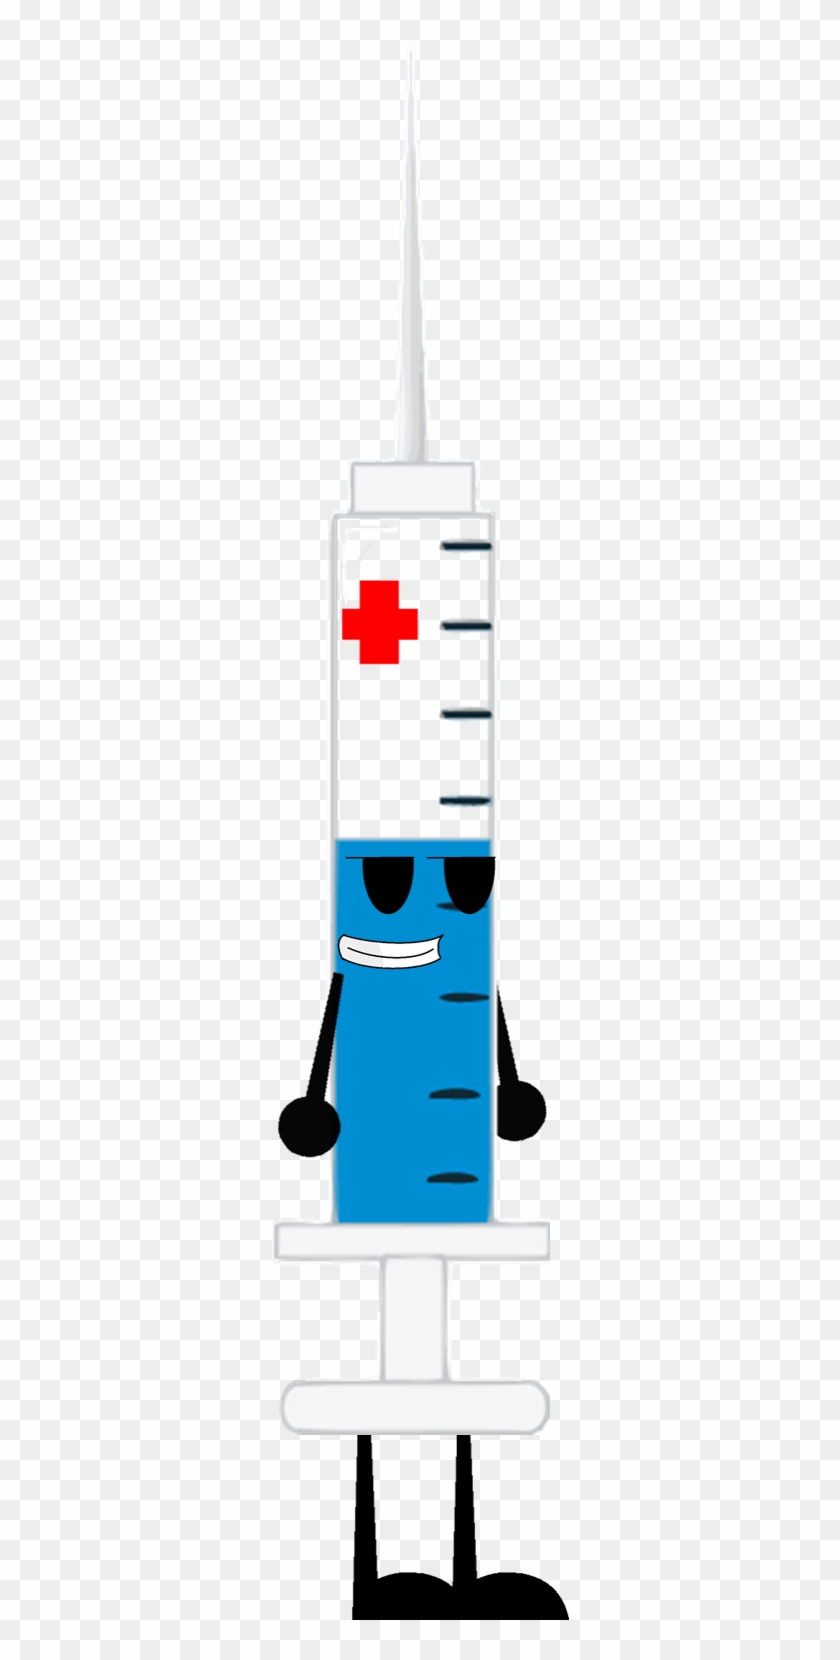 Syringe By Florence100-sylveon On Clipart Library - Cross #197593